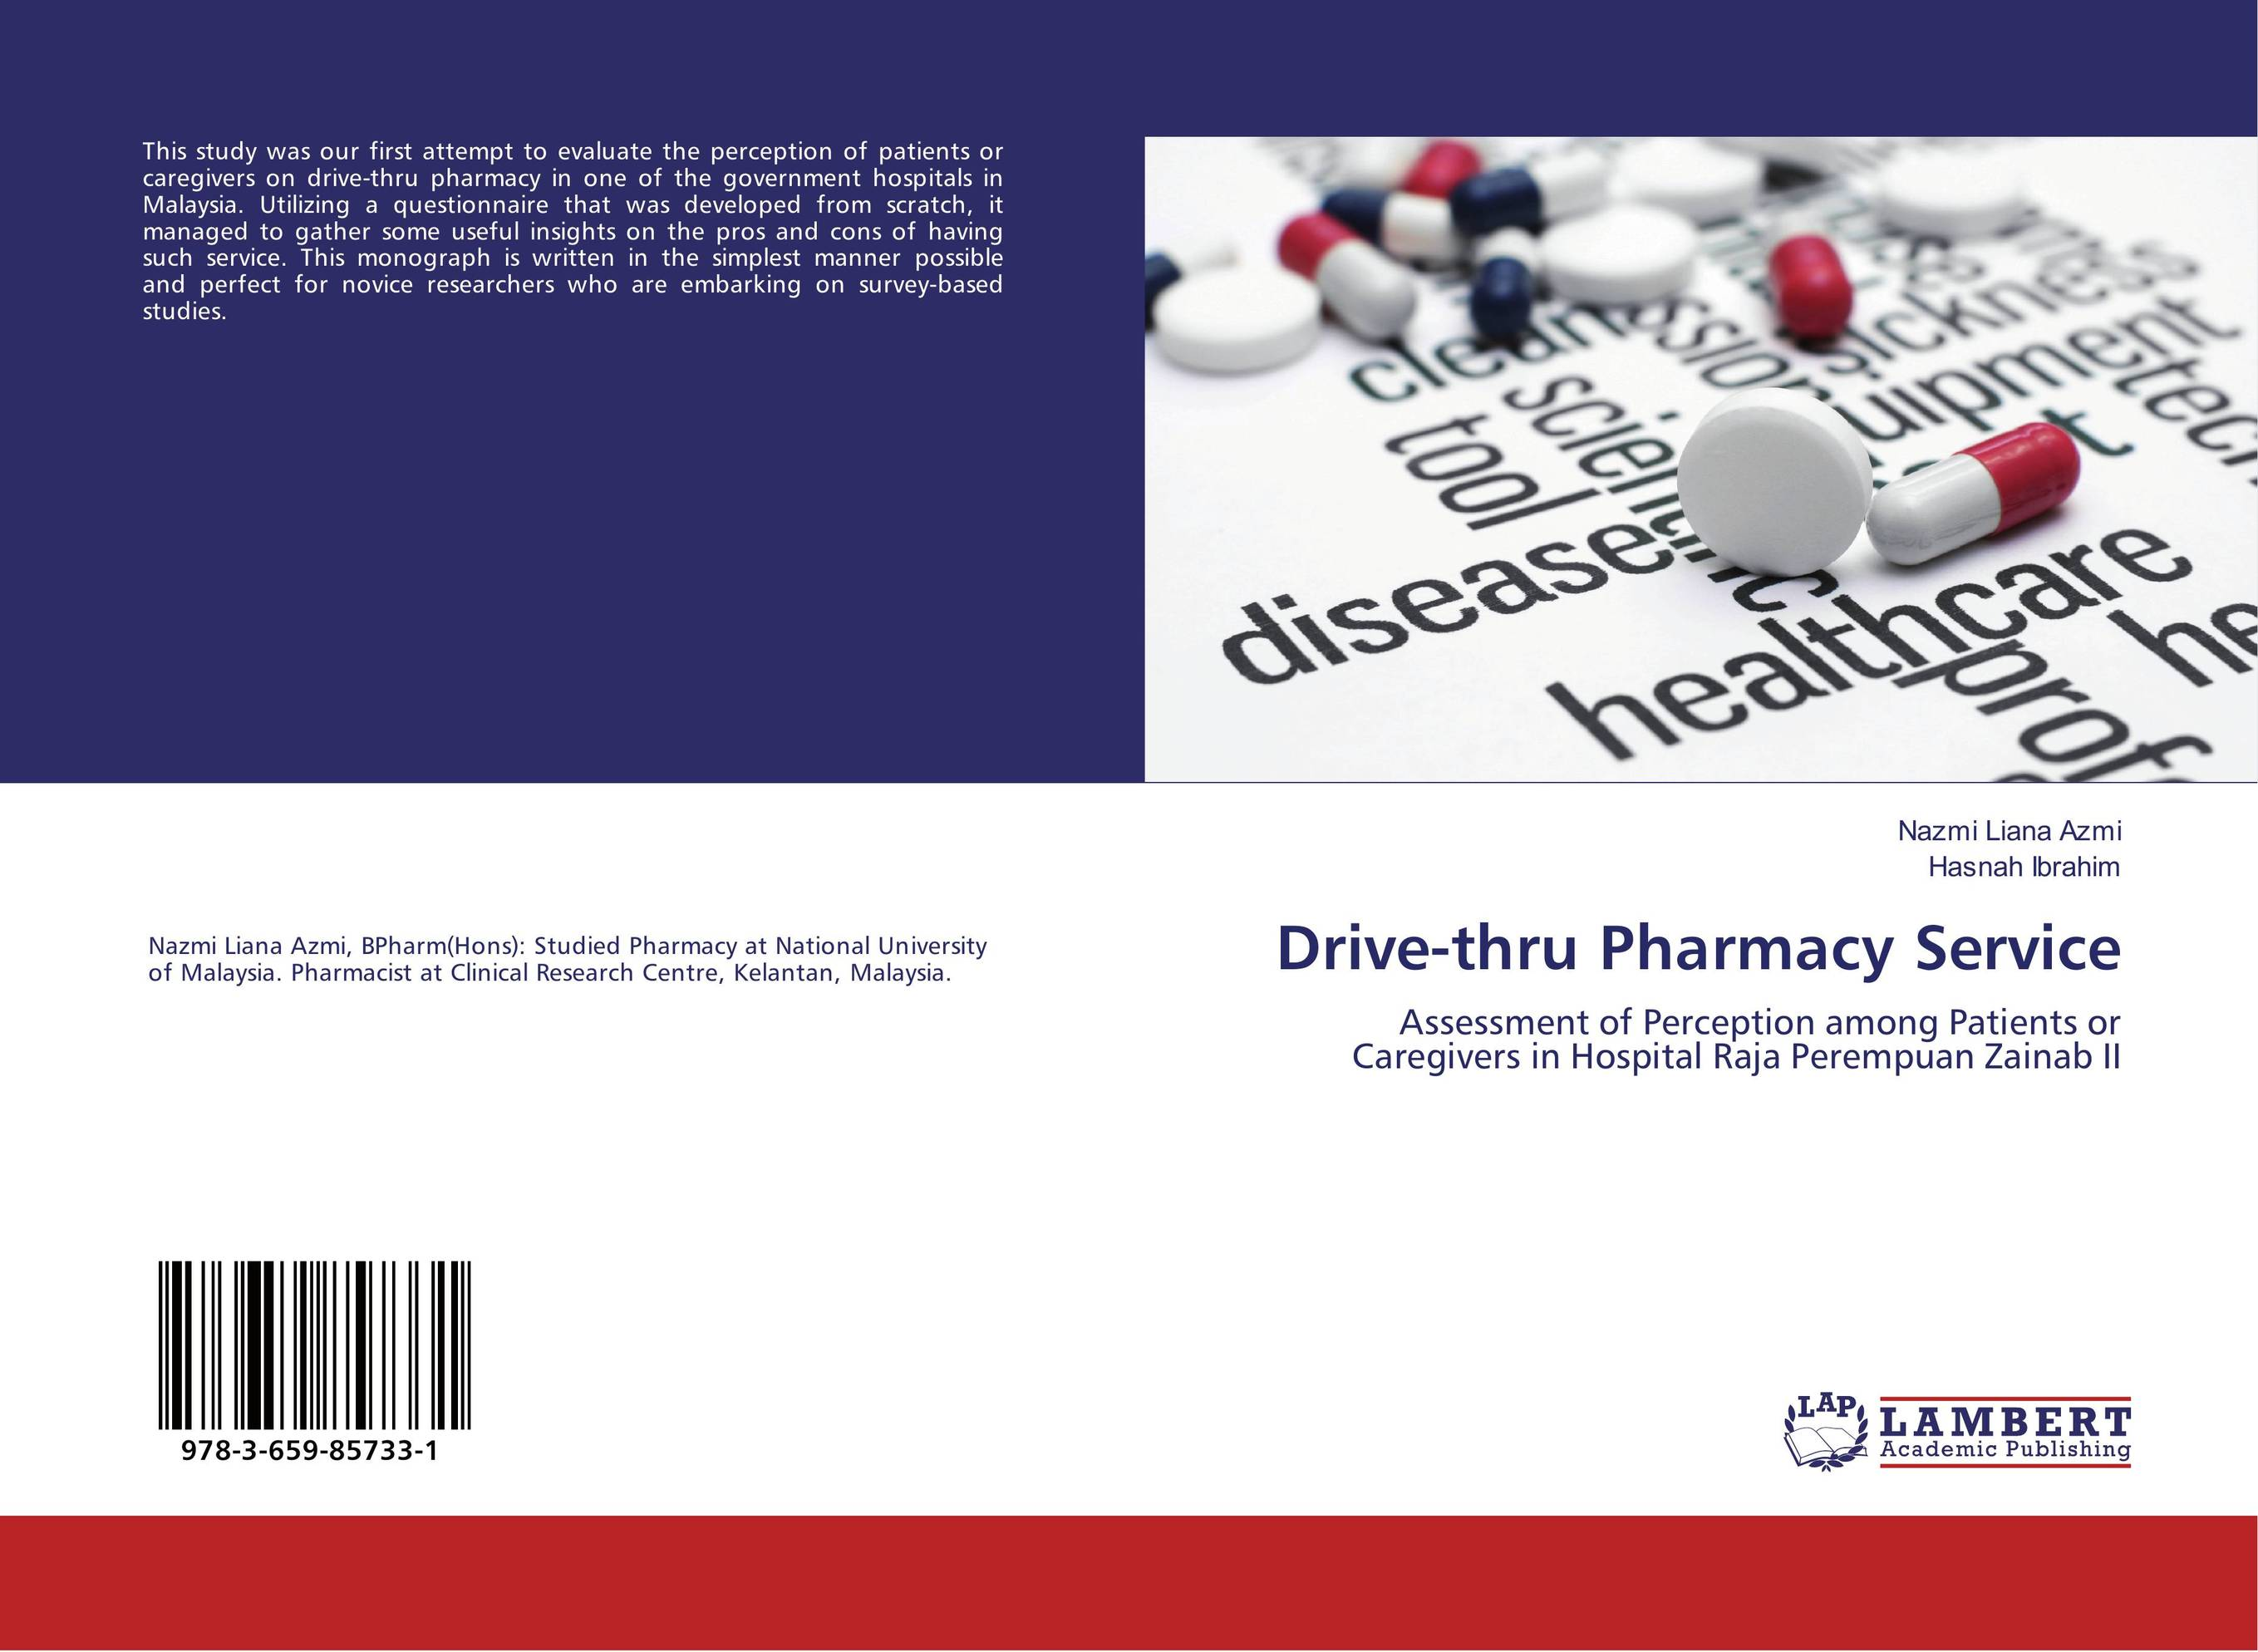 Drive-thru Pharmacy Service a concise textbook of community pharmacy